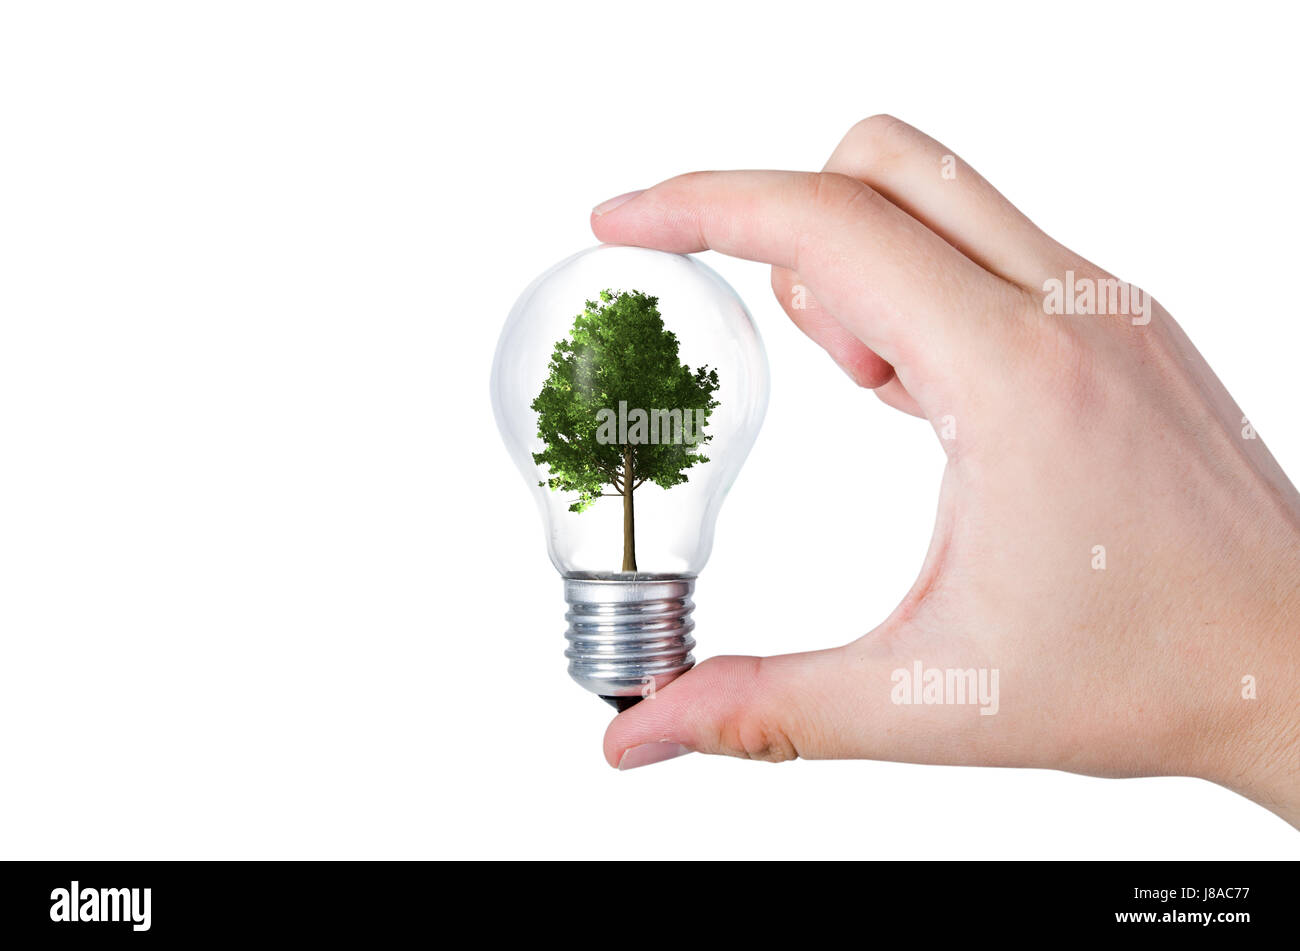 Energy efficiency concept. Abstract composition with tree in bulb on white background - Stock Image